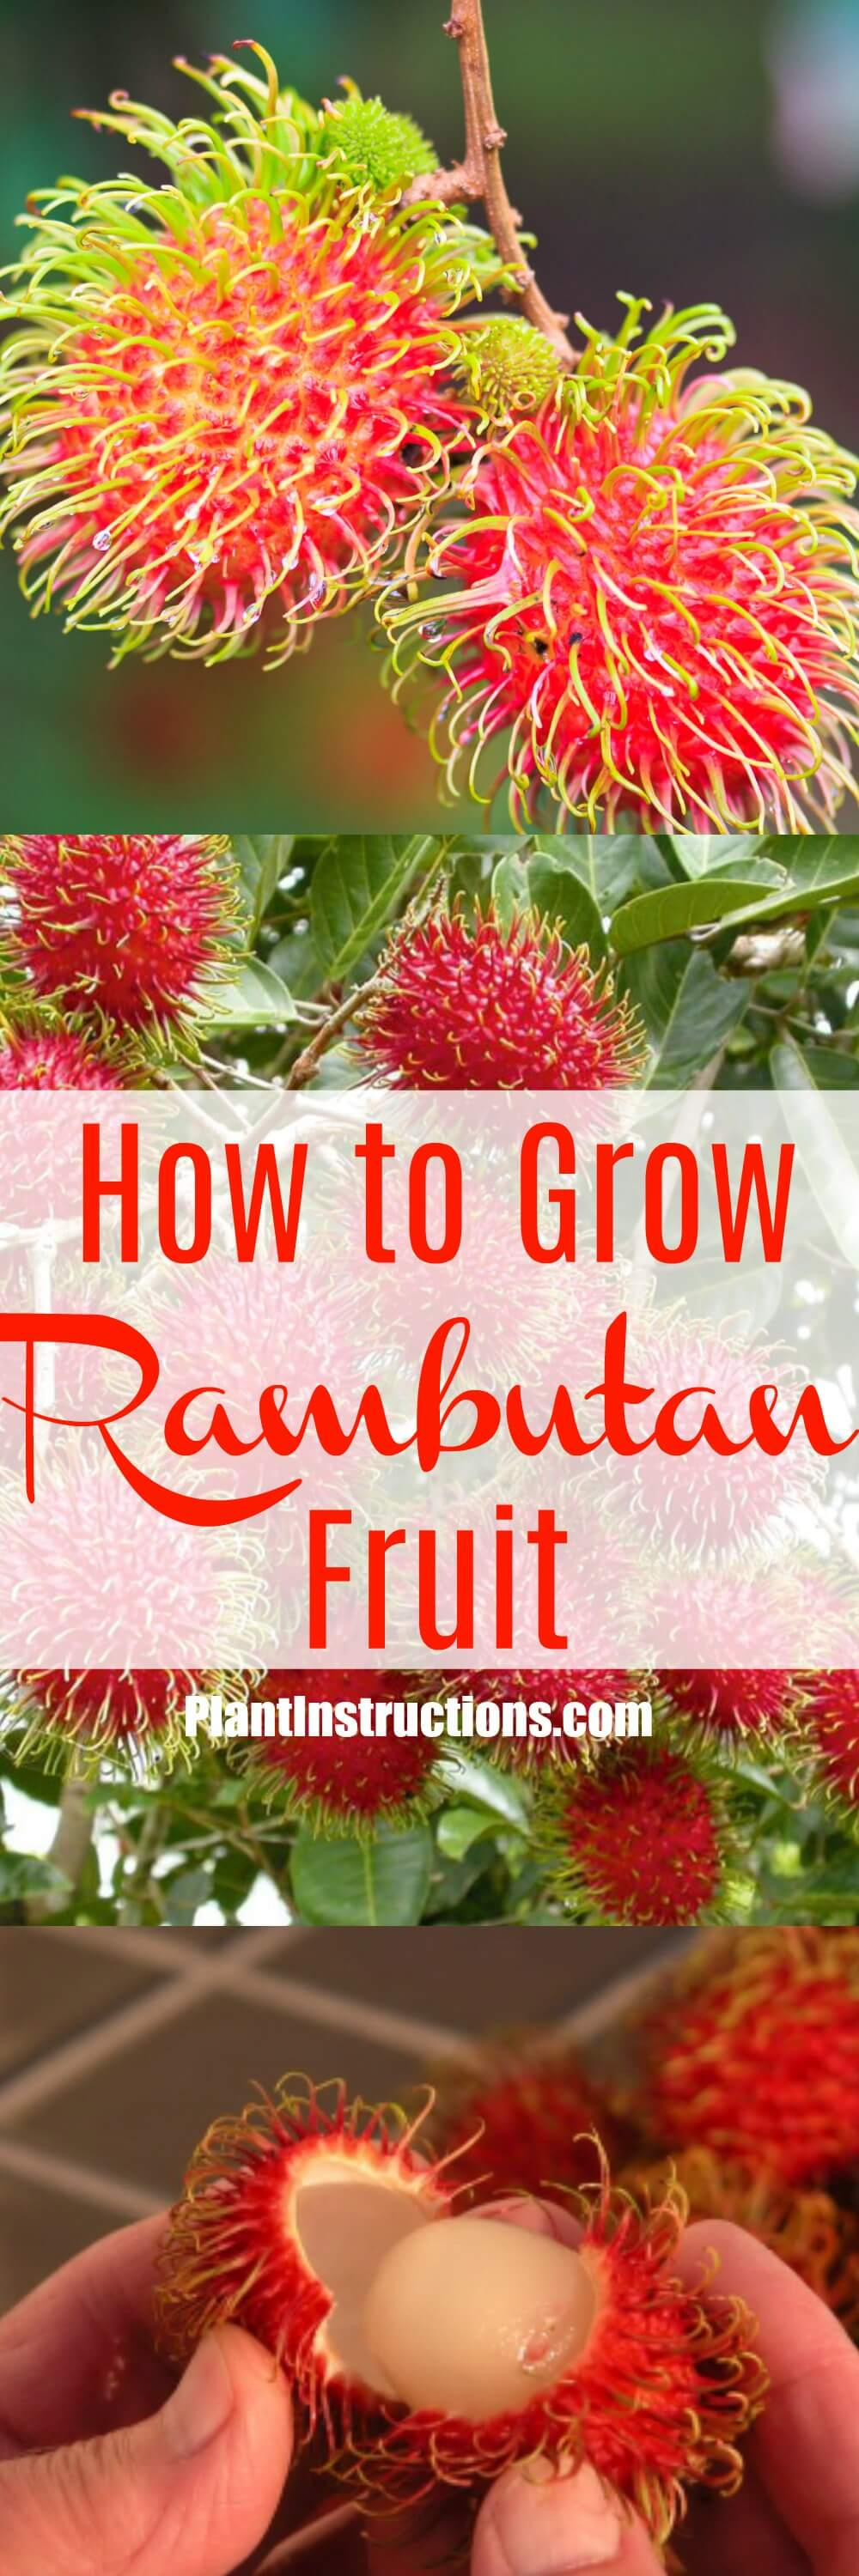 Learn how to plant, grow, and care for rambutan trees.